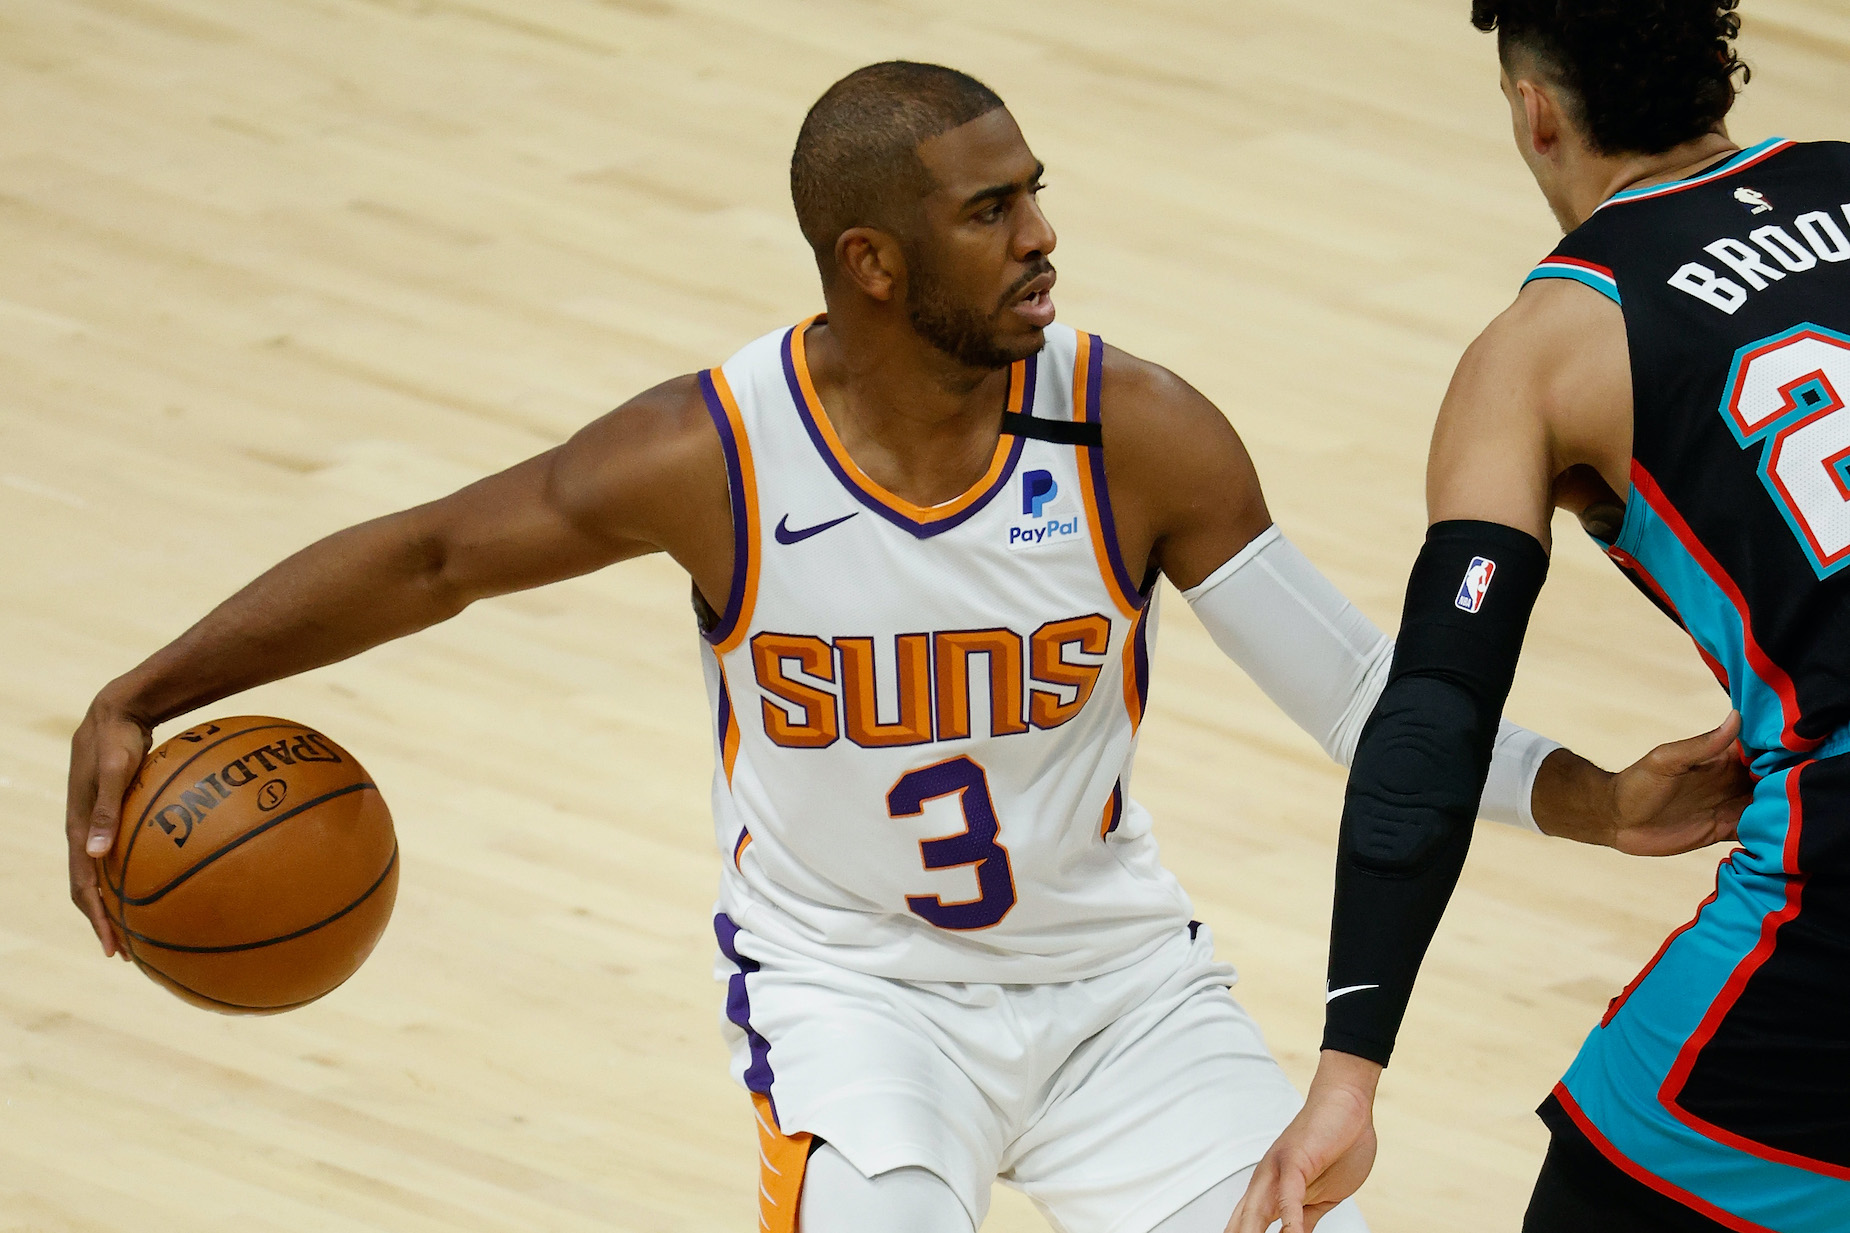 Phoenix Suns guard Chris Paul dribbles the ball up the court